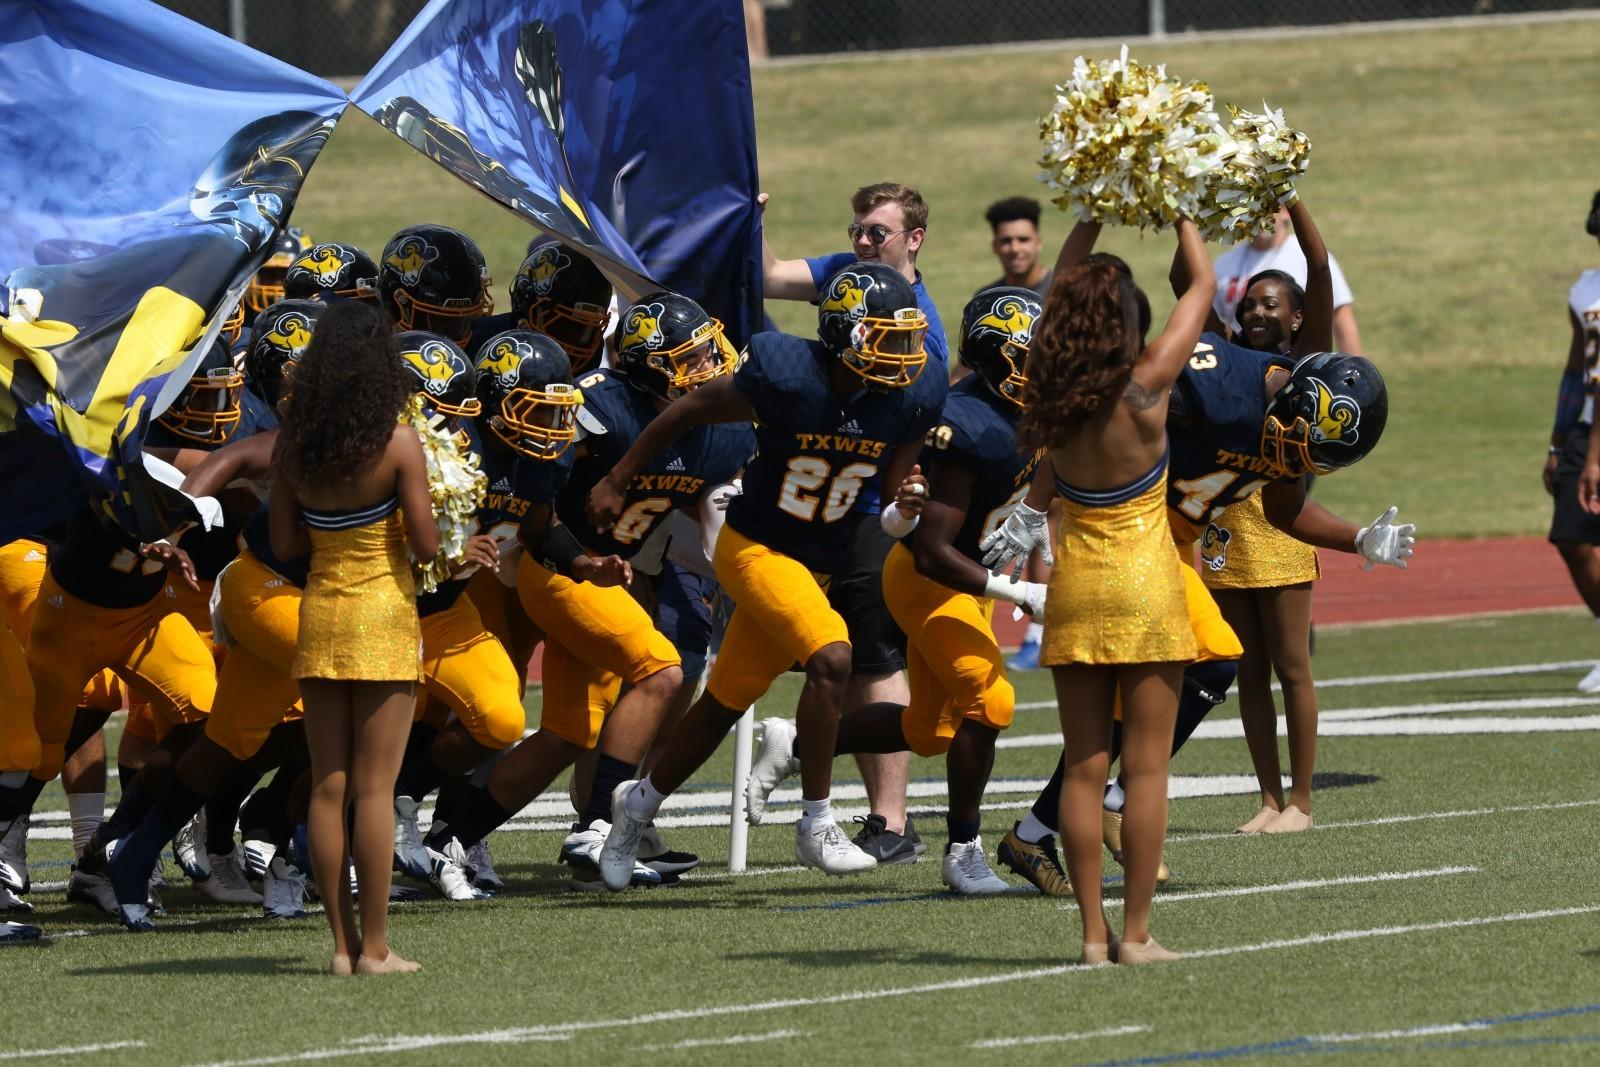 Rams fall to SAGU 42-7 in first conference game